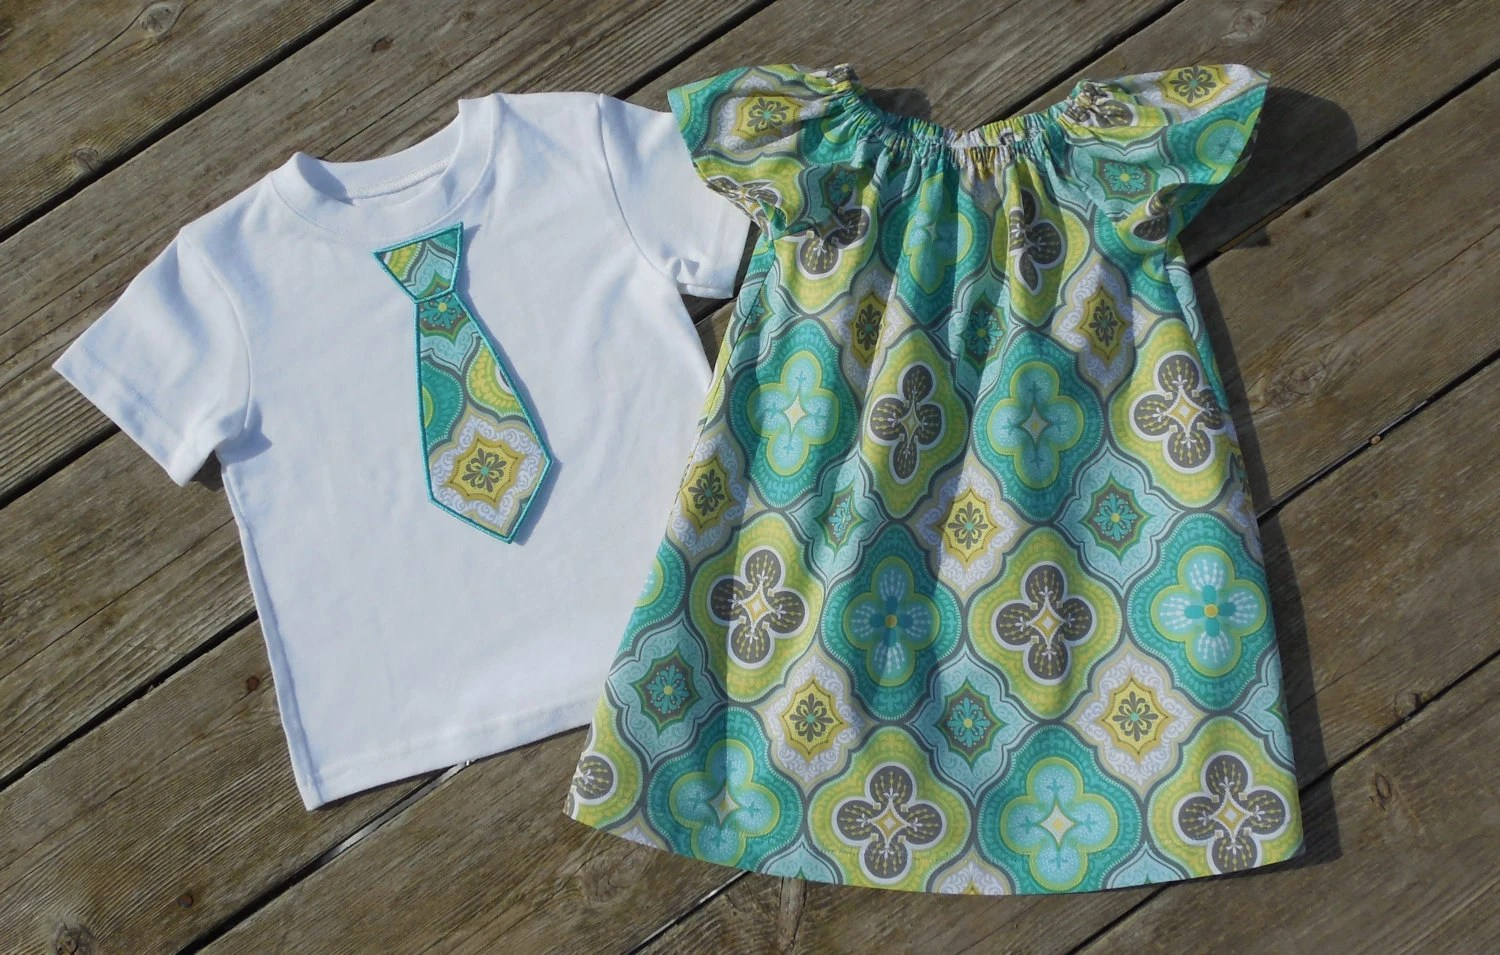 Brother and Sister Matching Outfits – Girl's Aqua and Gray Quatrefoil Peasant Dress with Brother Appliqued Tie Shirt by Livanni